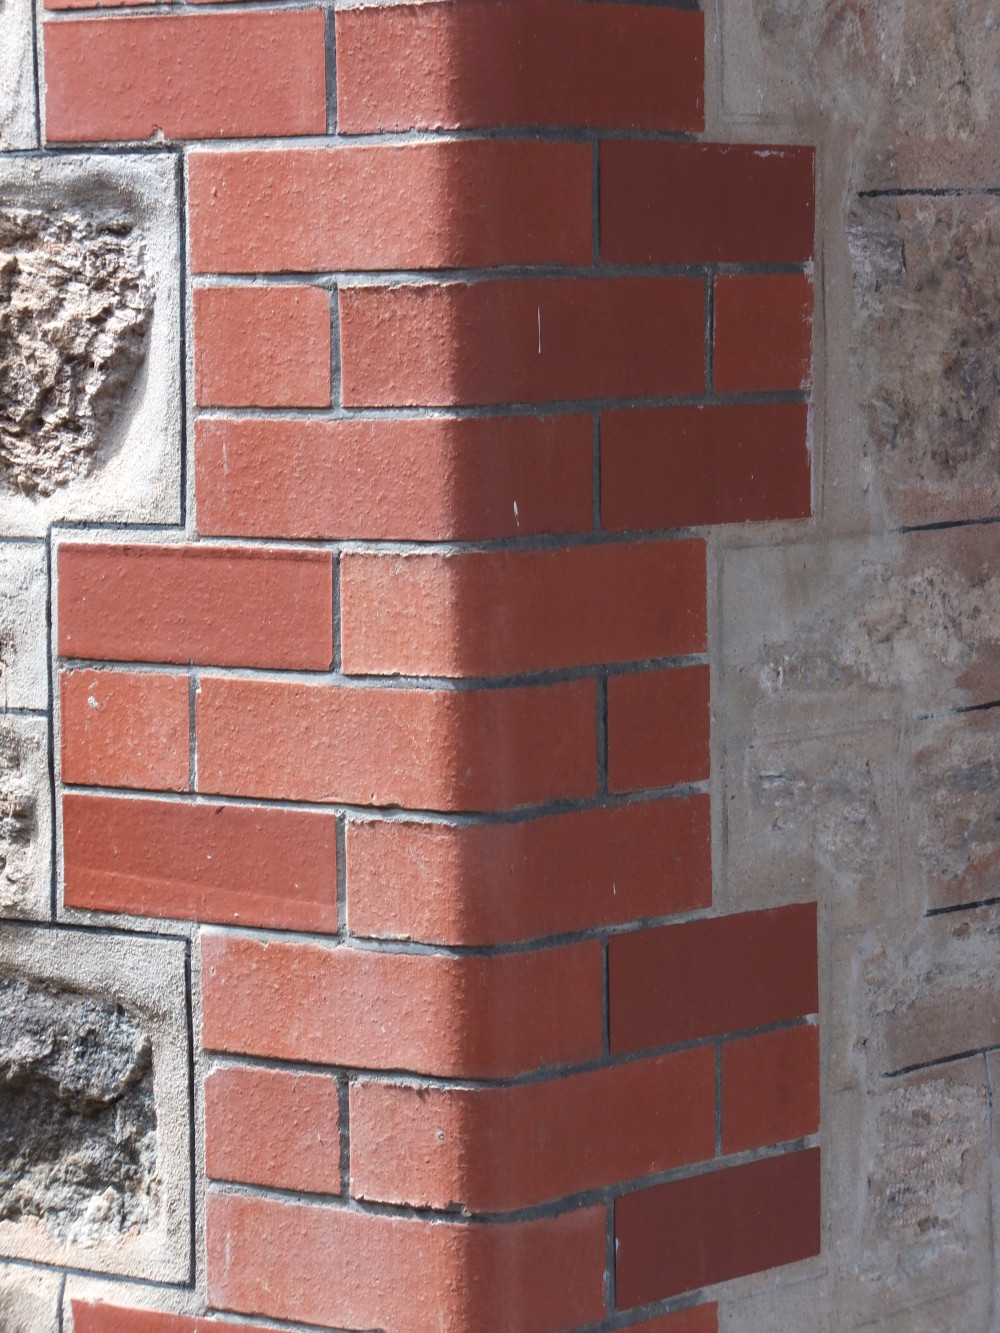 Heritage and conservation for Brick quoin corners